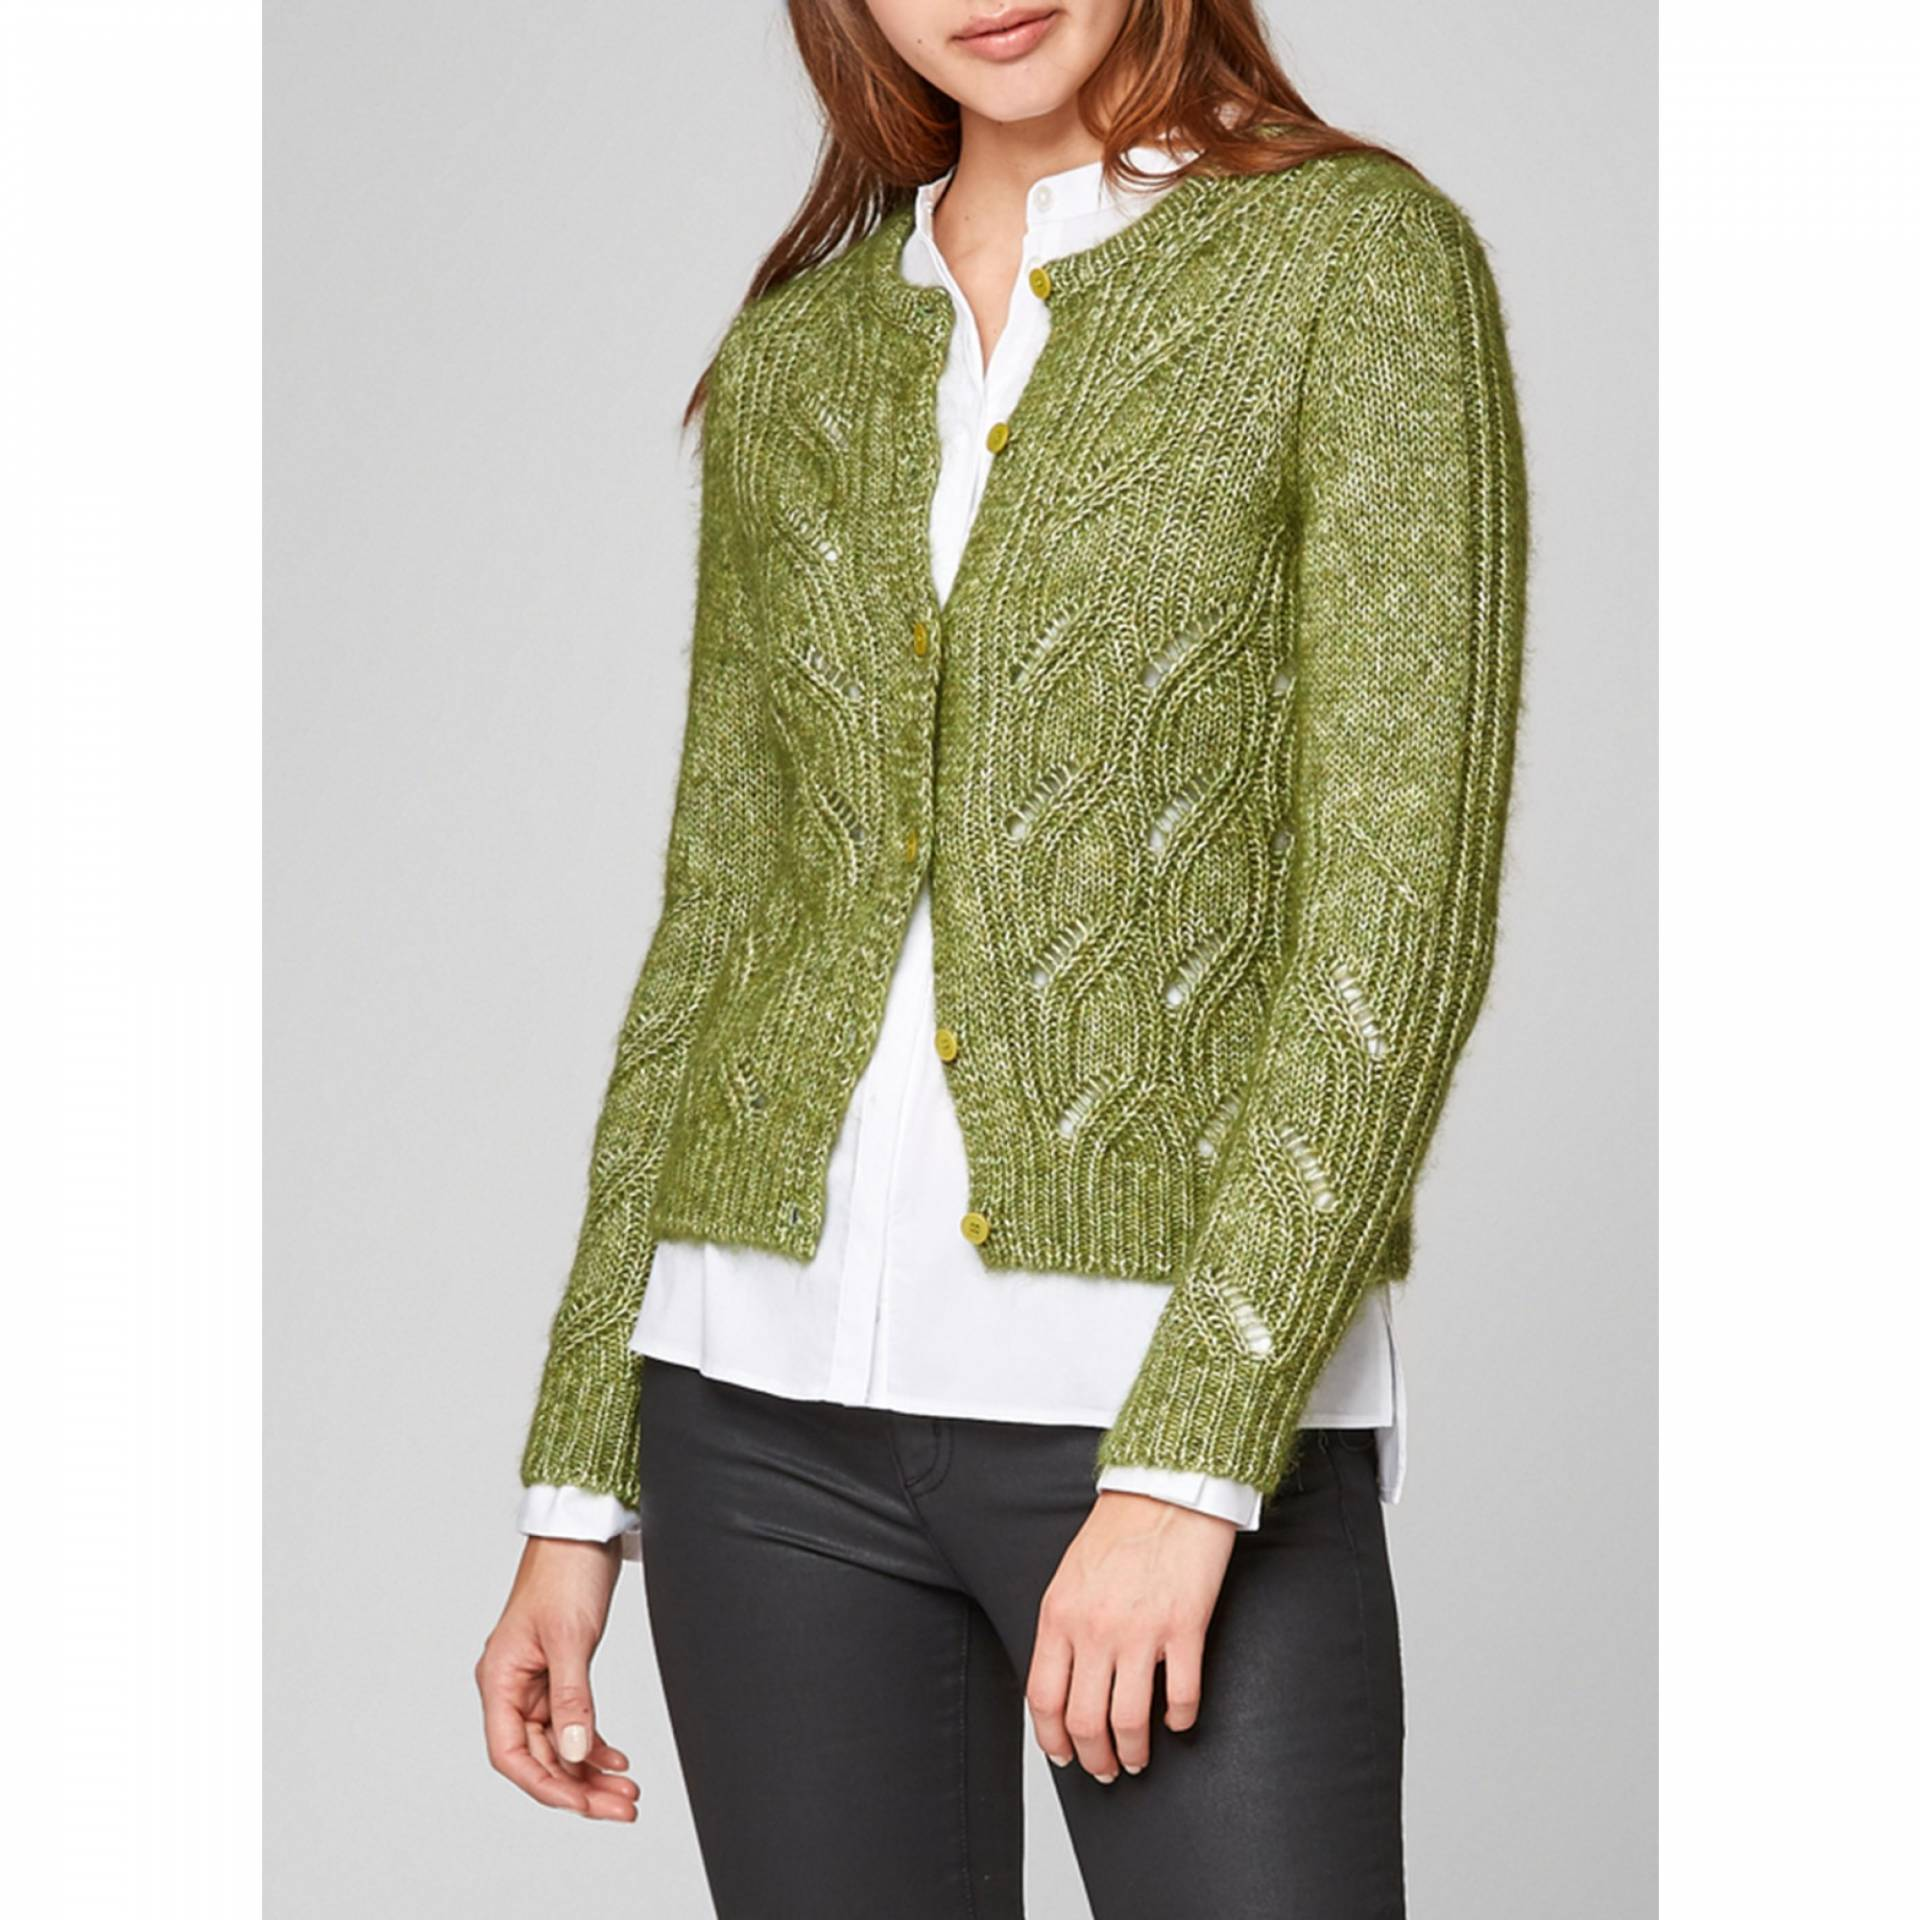 märz strickjacke damen